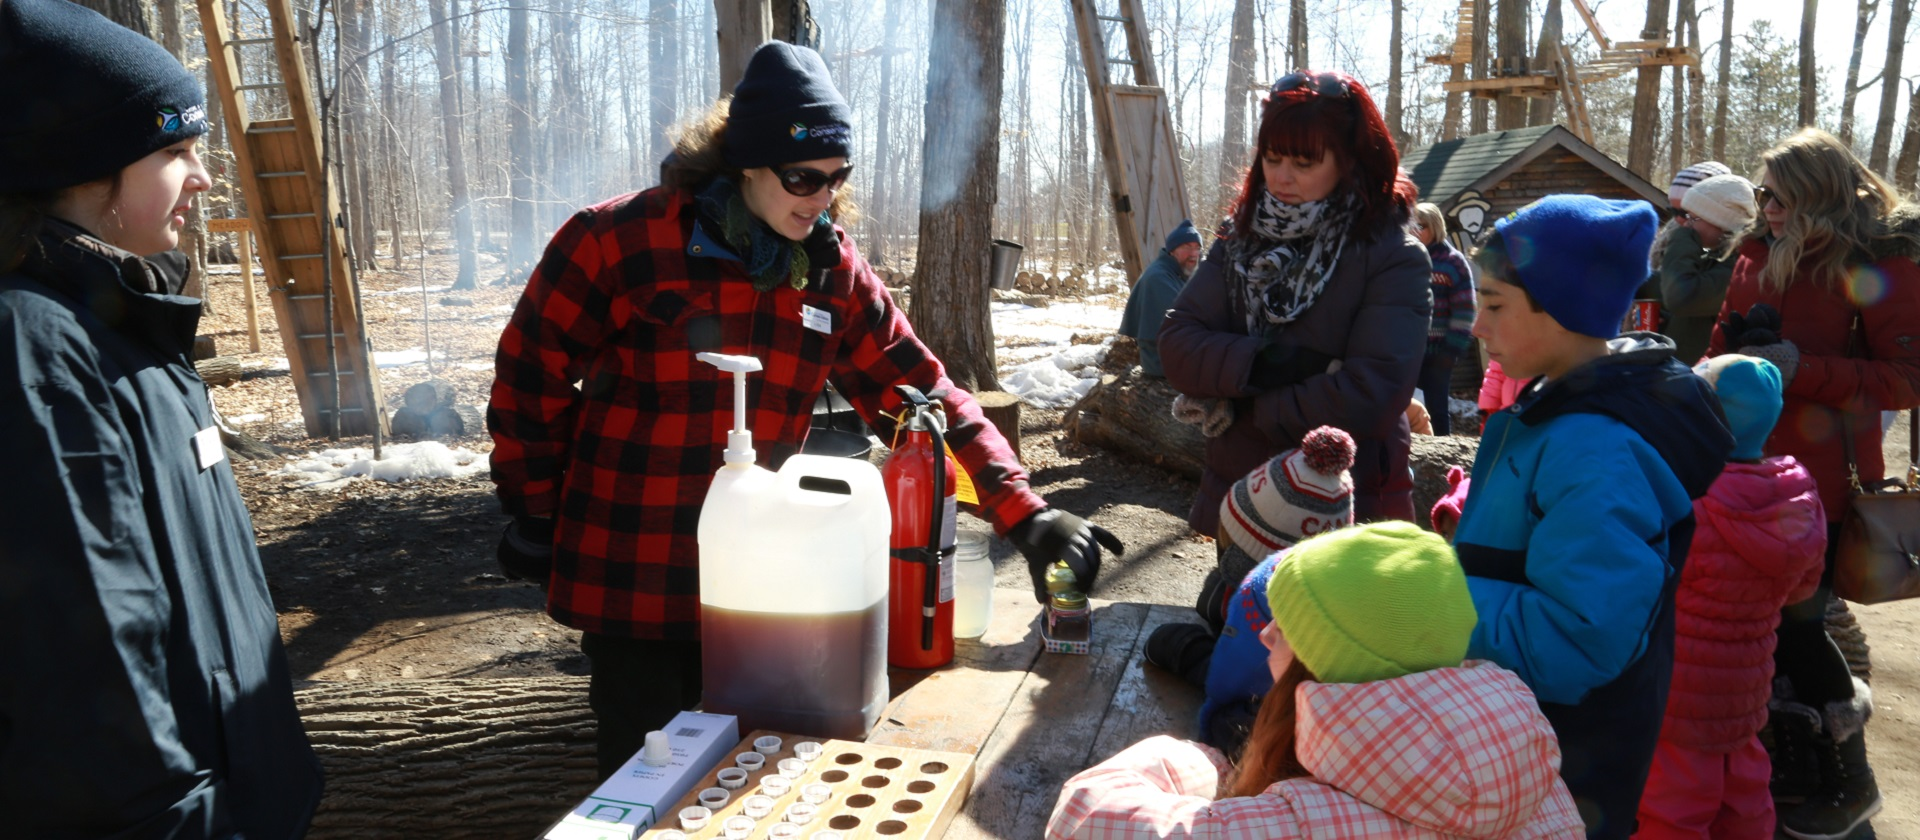 Sugarbush Maple Syrup Festival at Bruce's Mill Conservation Area